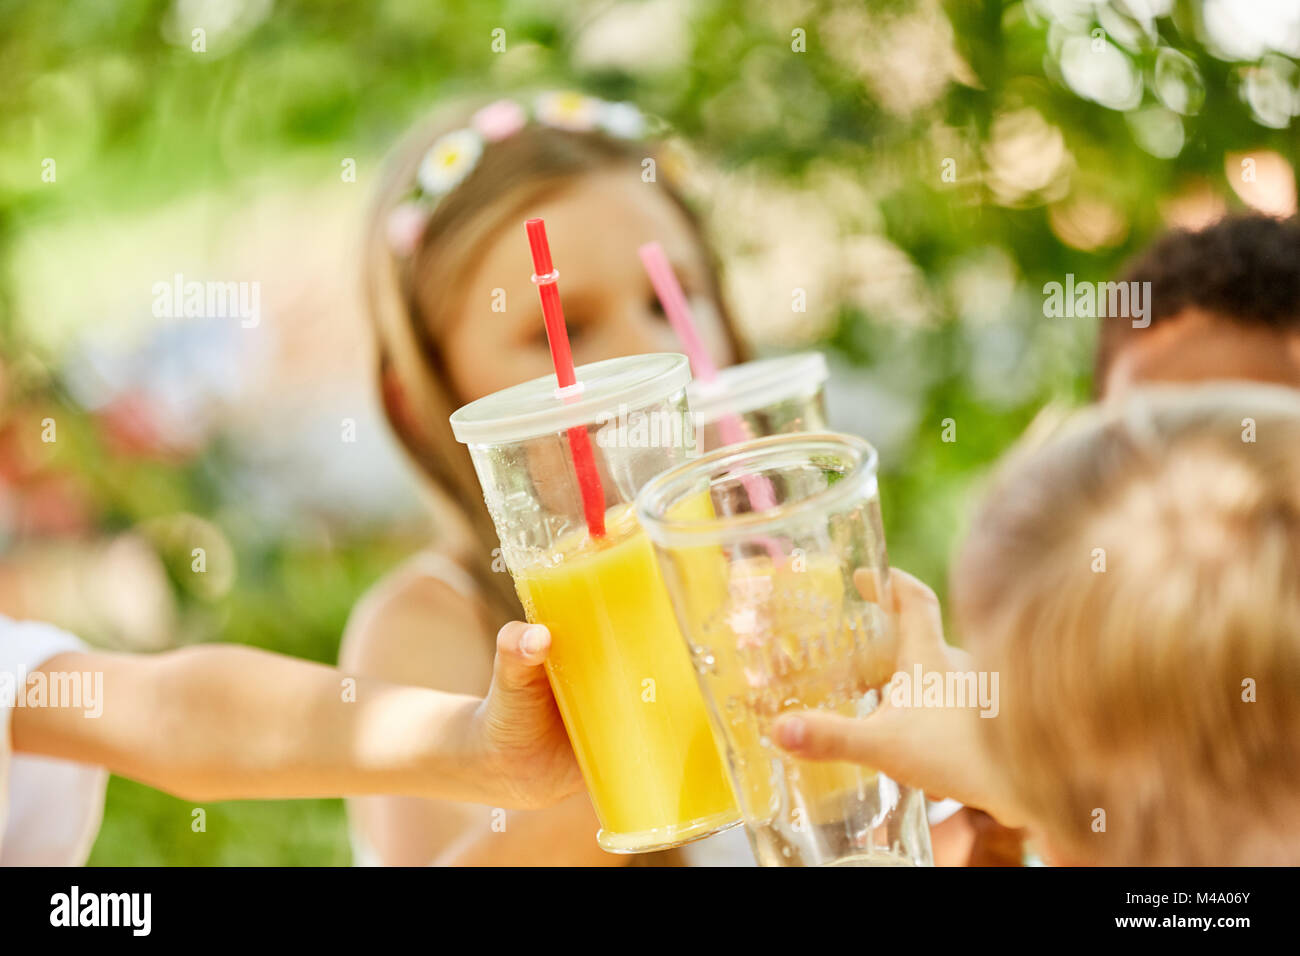 Kids celebrate and toast with juice on a kids birthday or party - Stock Image